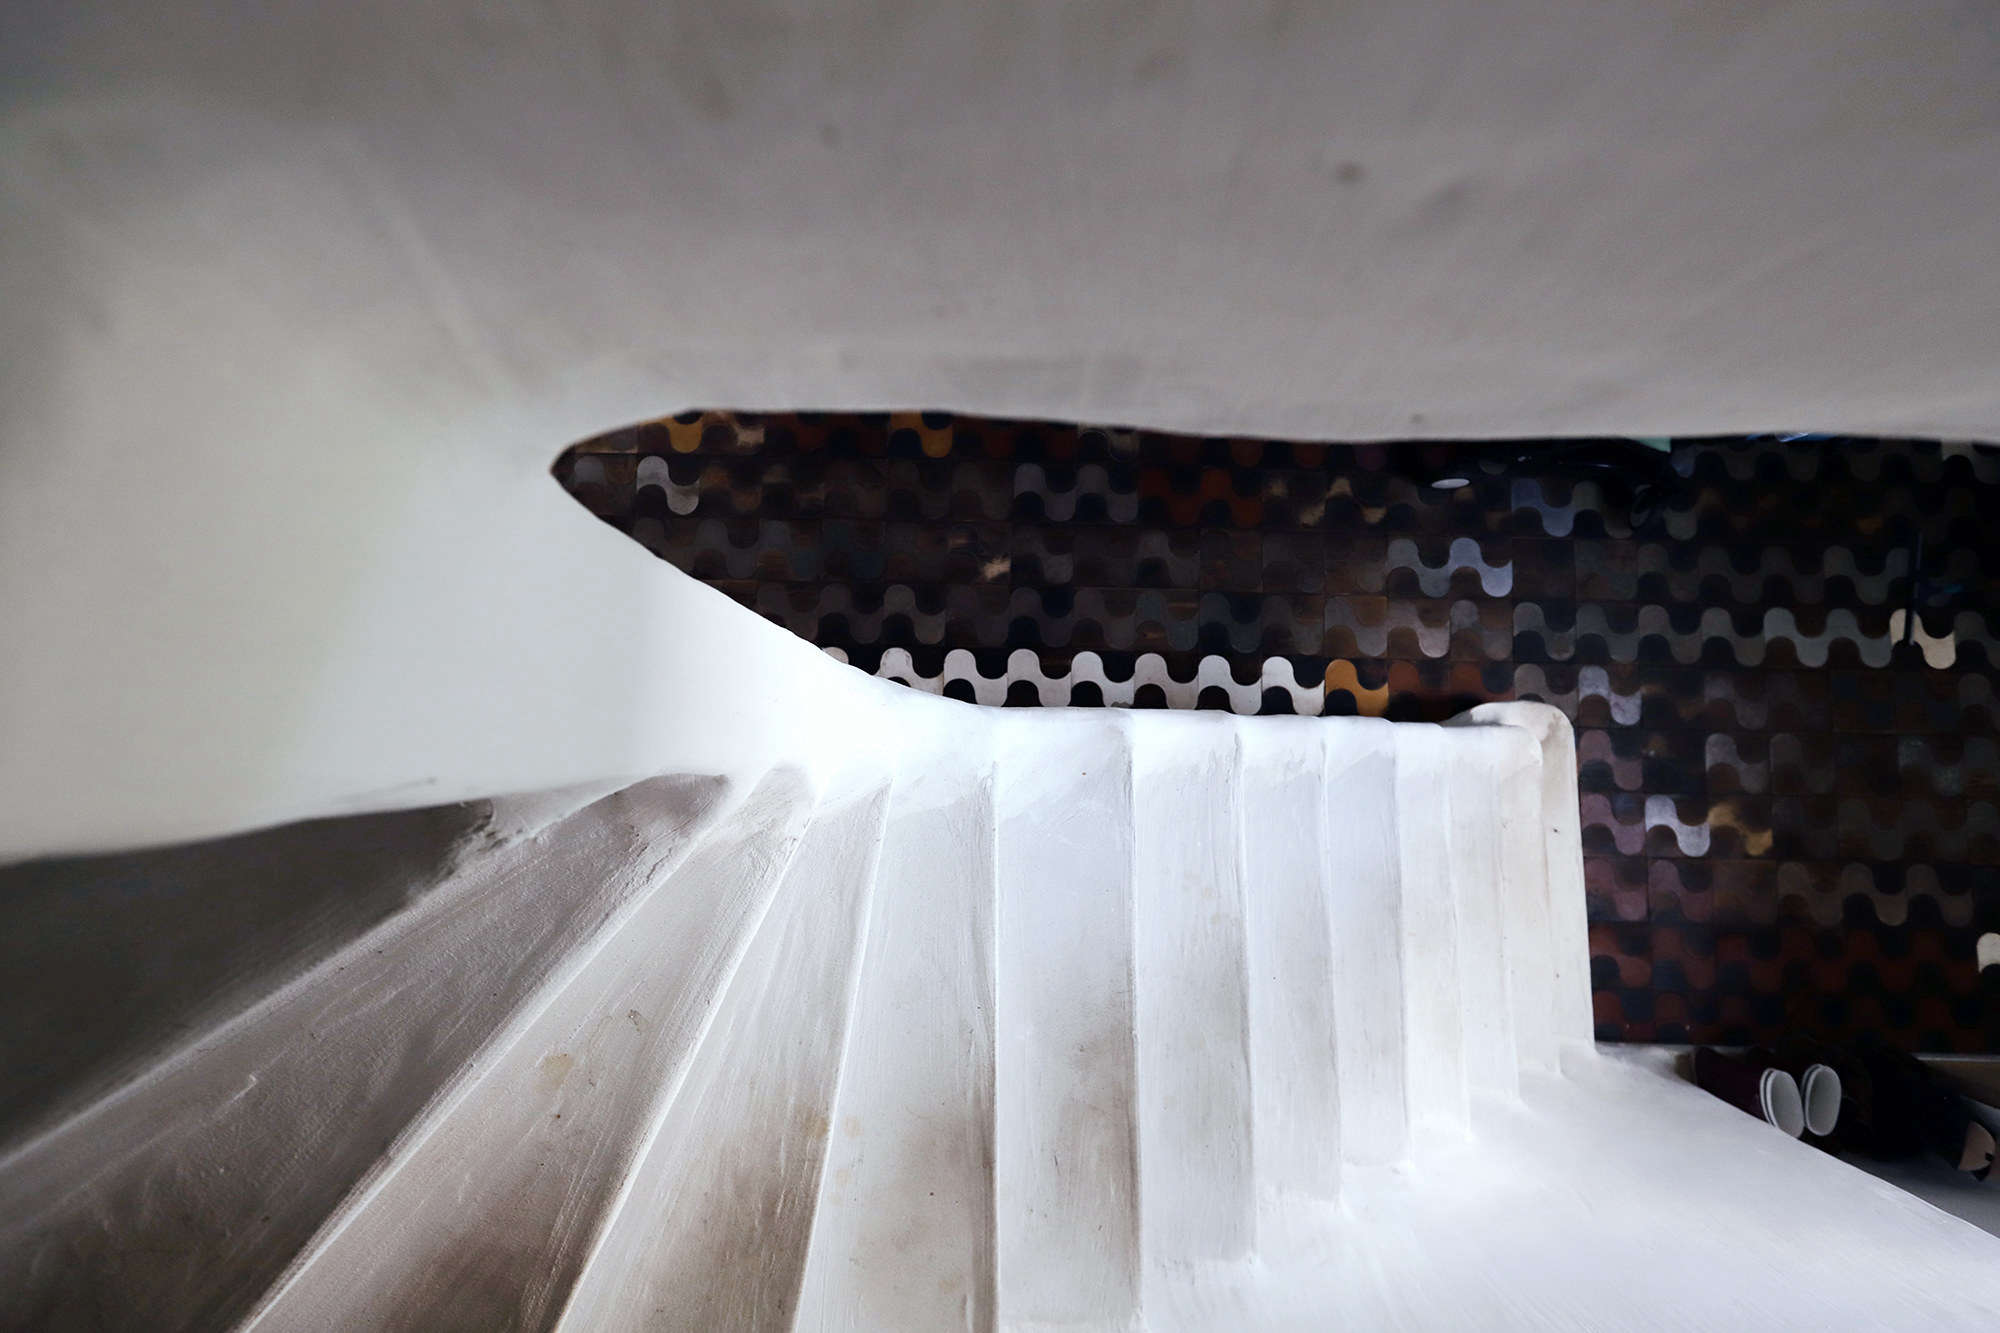 The main staircase between lower and upper floors is made of cement formed around the original stair. The floor tiles are leather, ceramic, steel, and wood, made by Valentin's sister, Miriam Loellmann, who lives and works in Rio de Janeiro, Brazil.